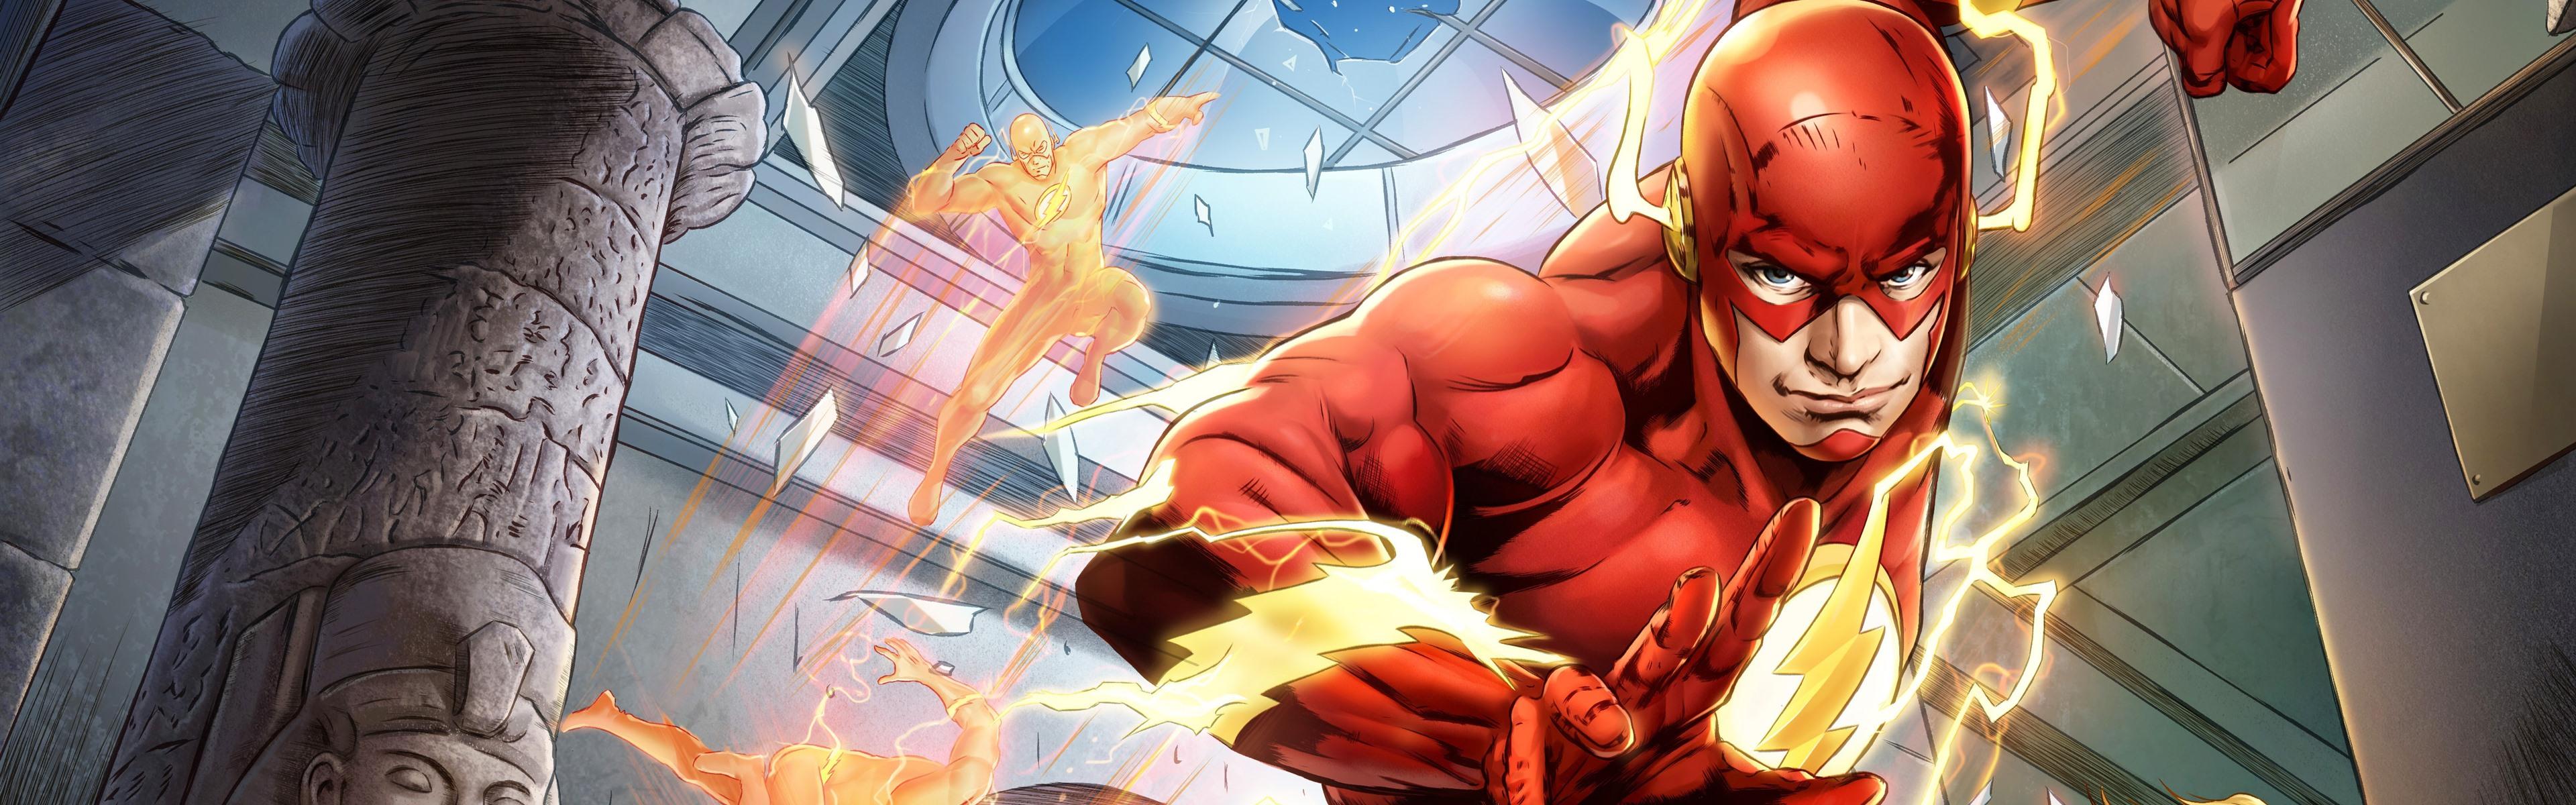 Wallpaper The Flash Dc Comics Hero 5120x2880 Uhd 5k Picture Image